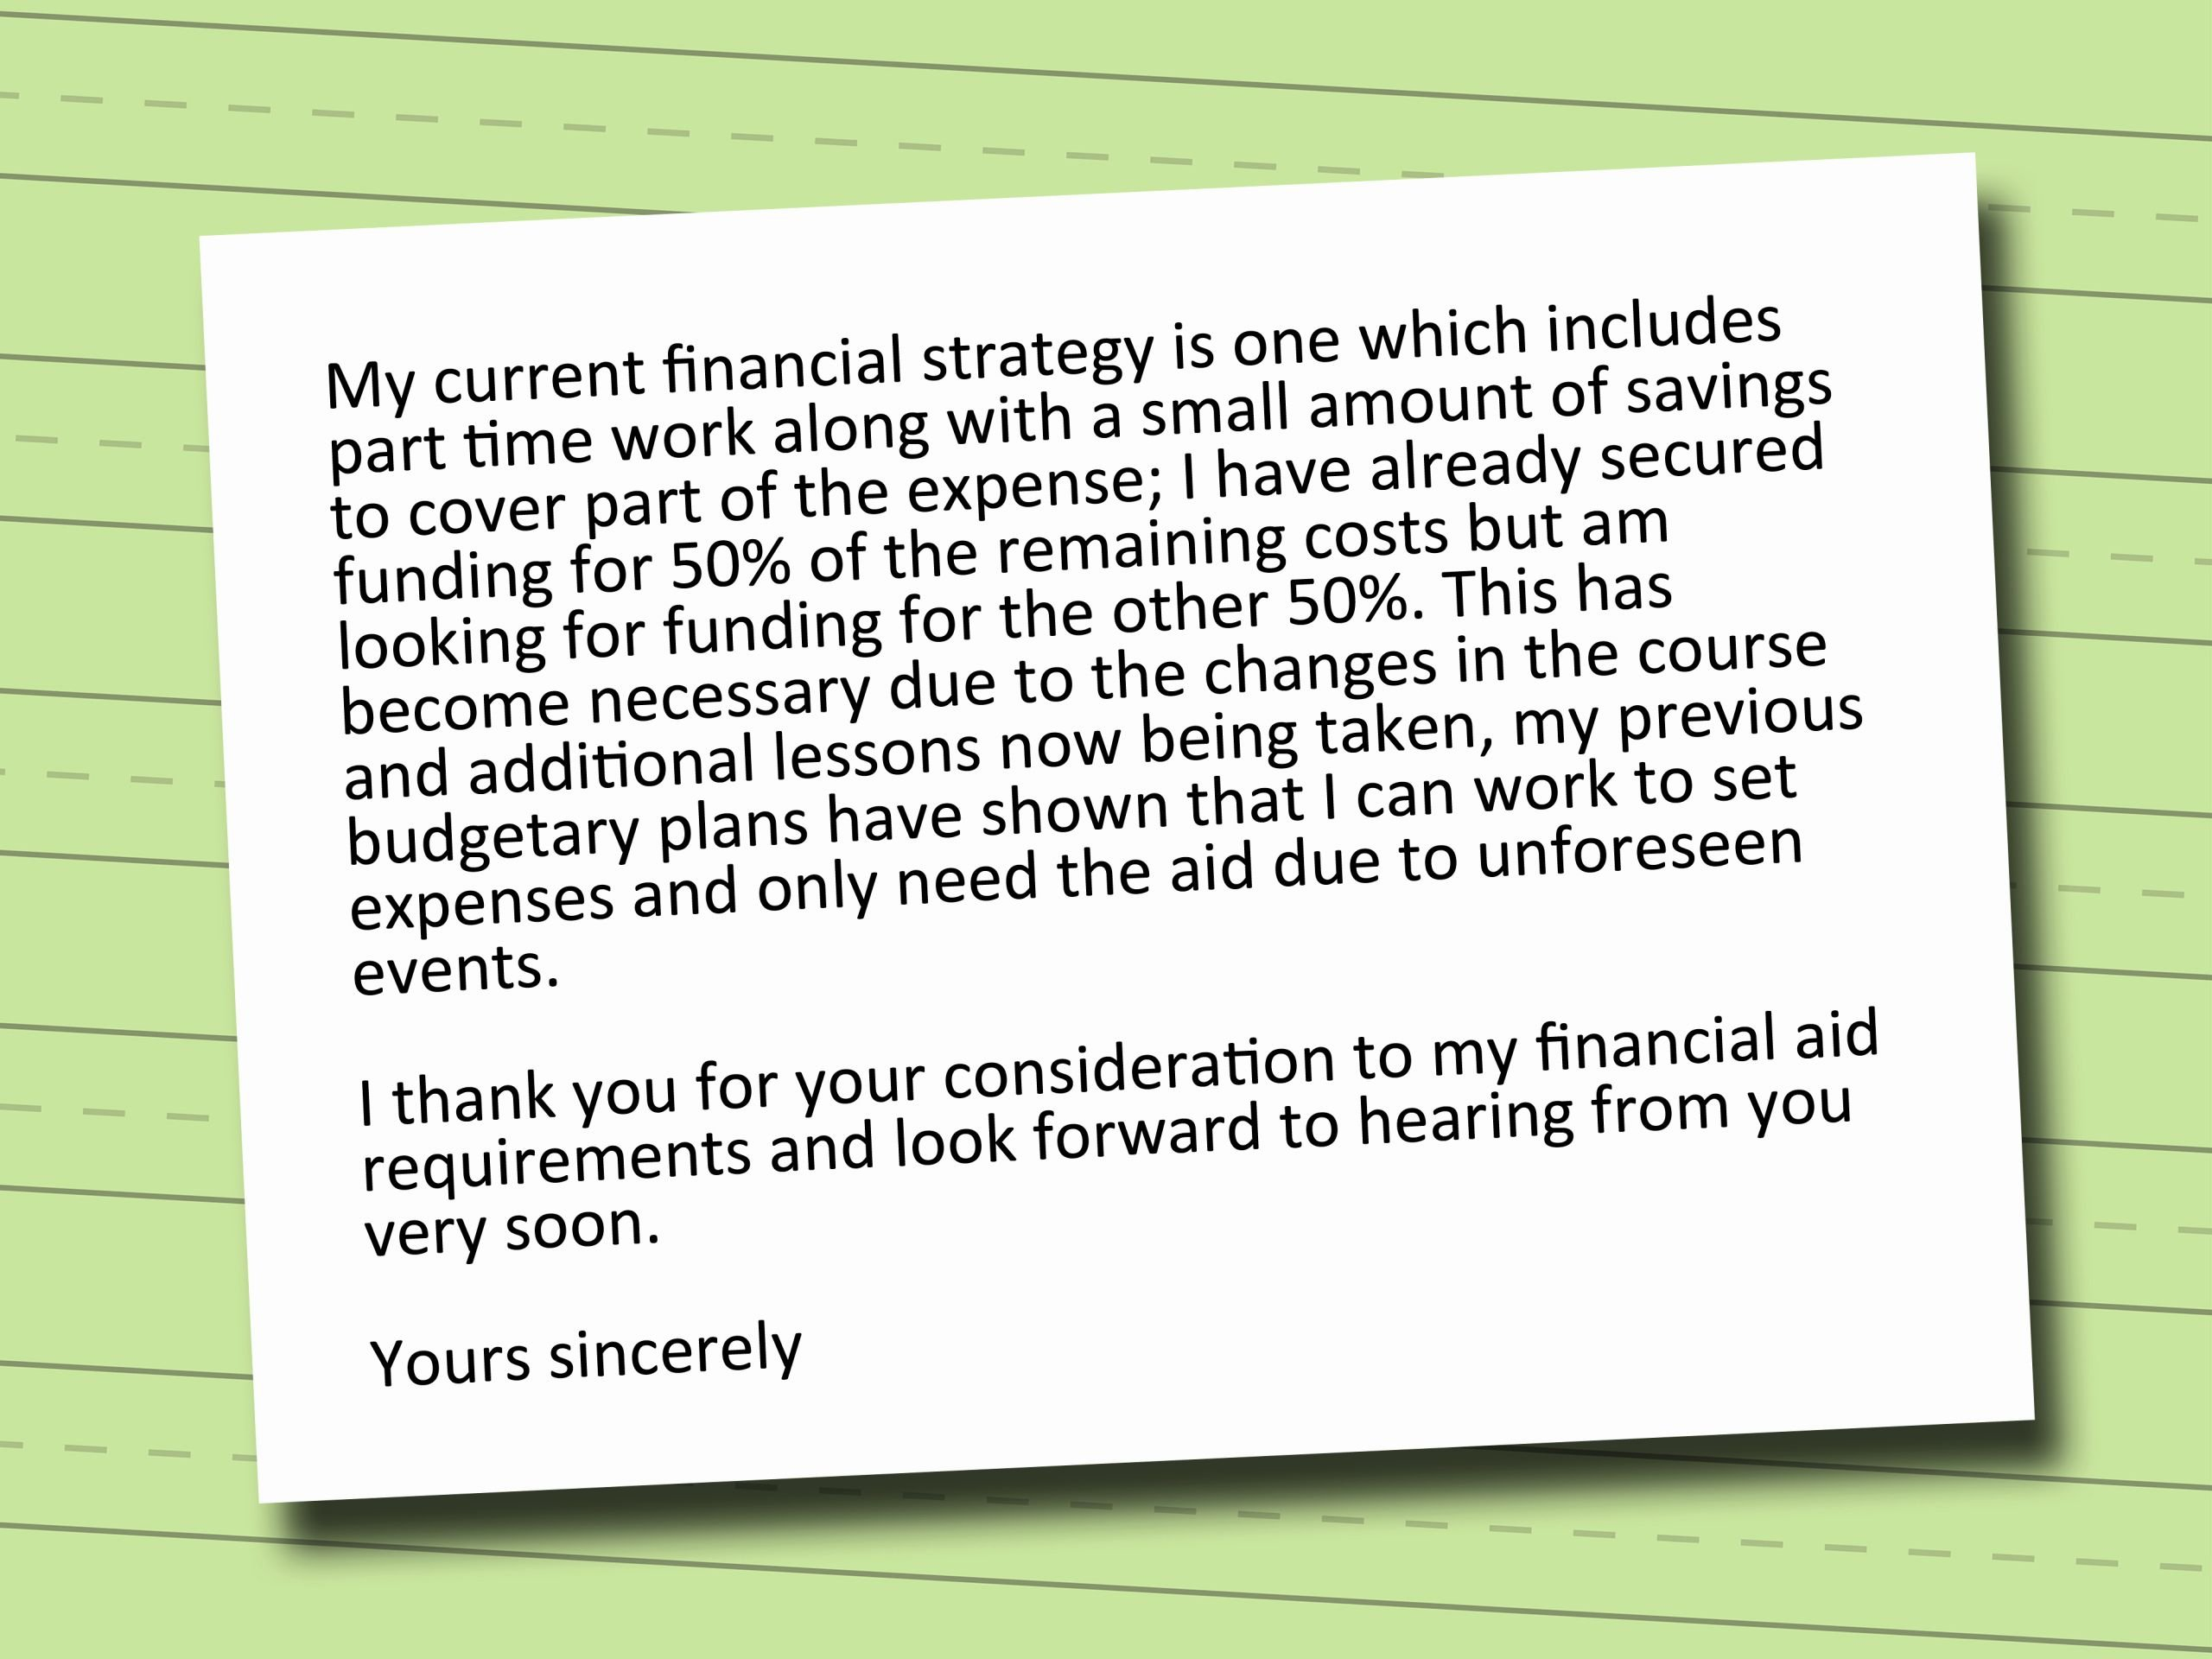 Financial Need Letter Fresh How to Write A Letter for Financial Aid 3 Easy Steps